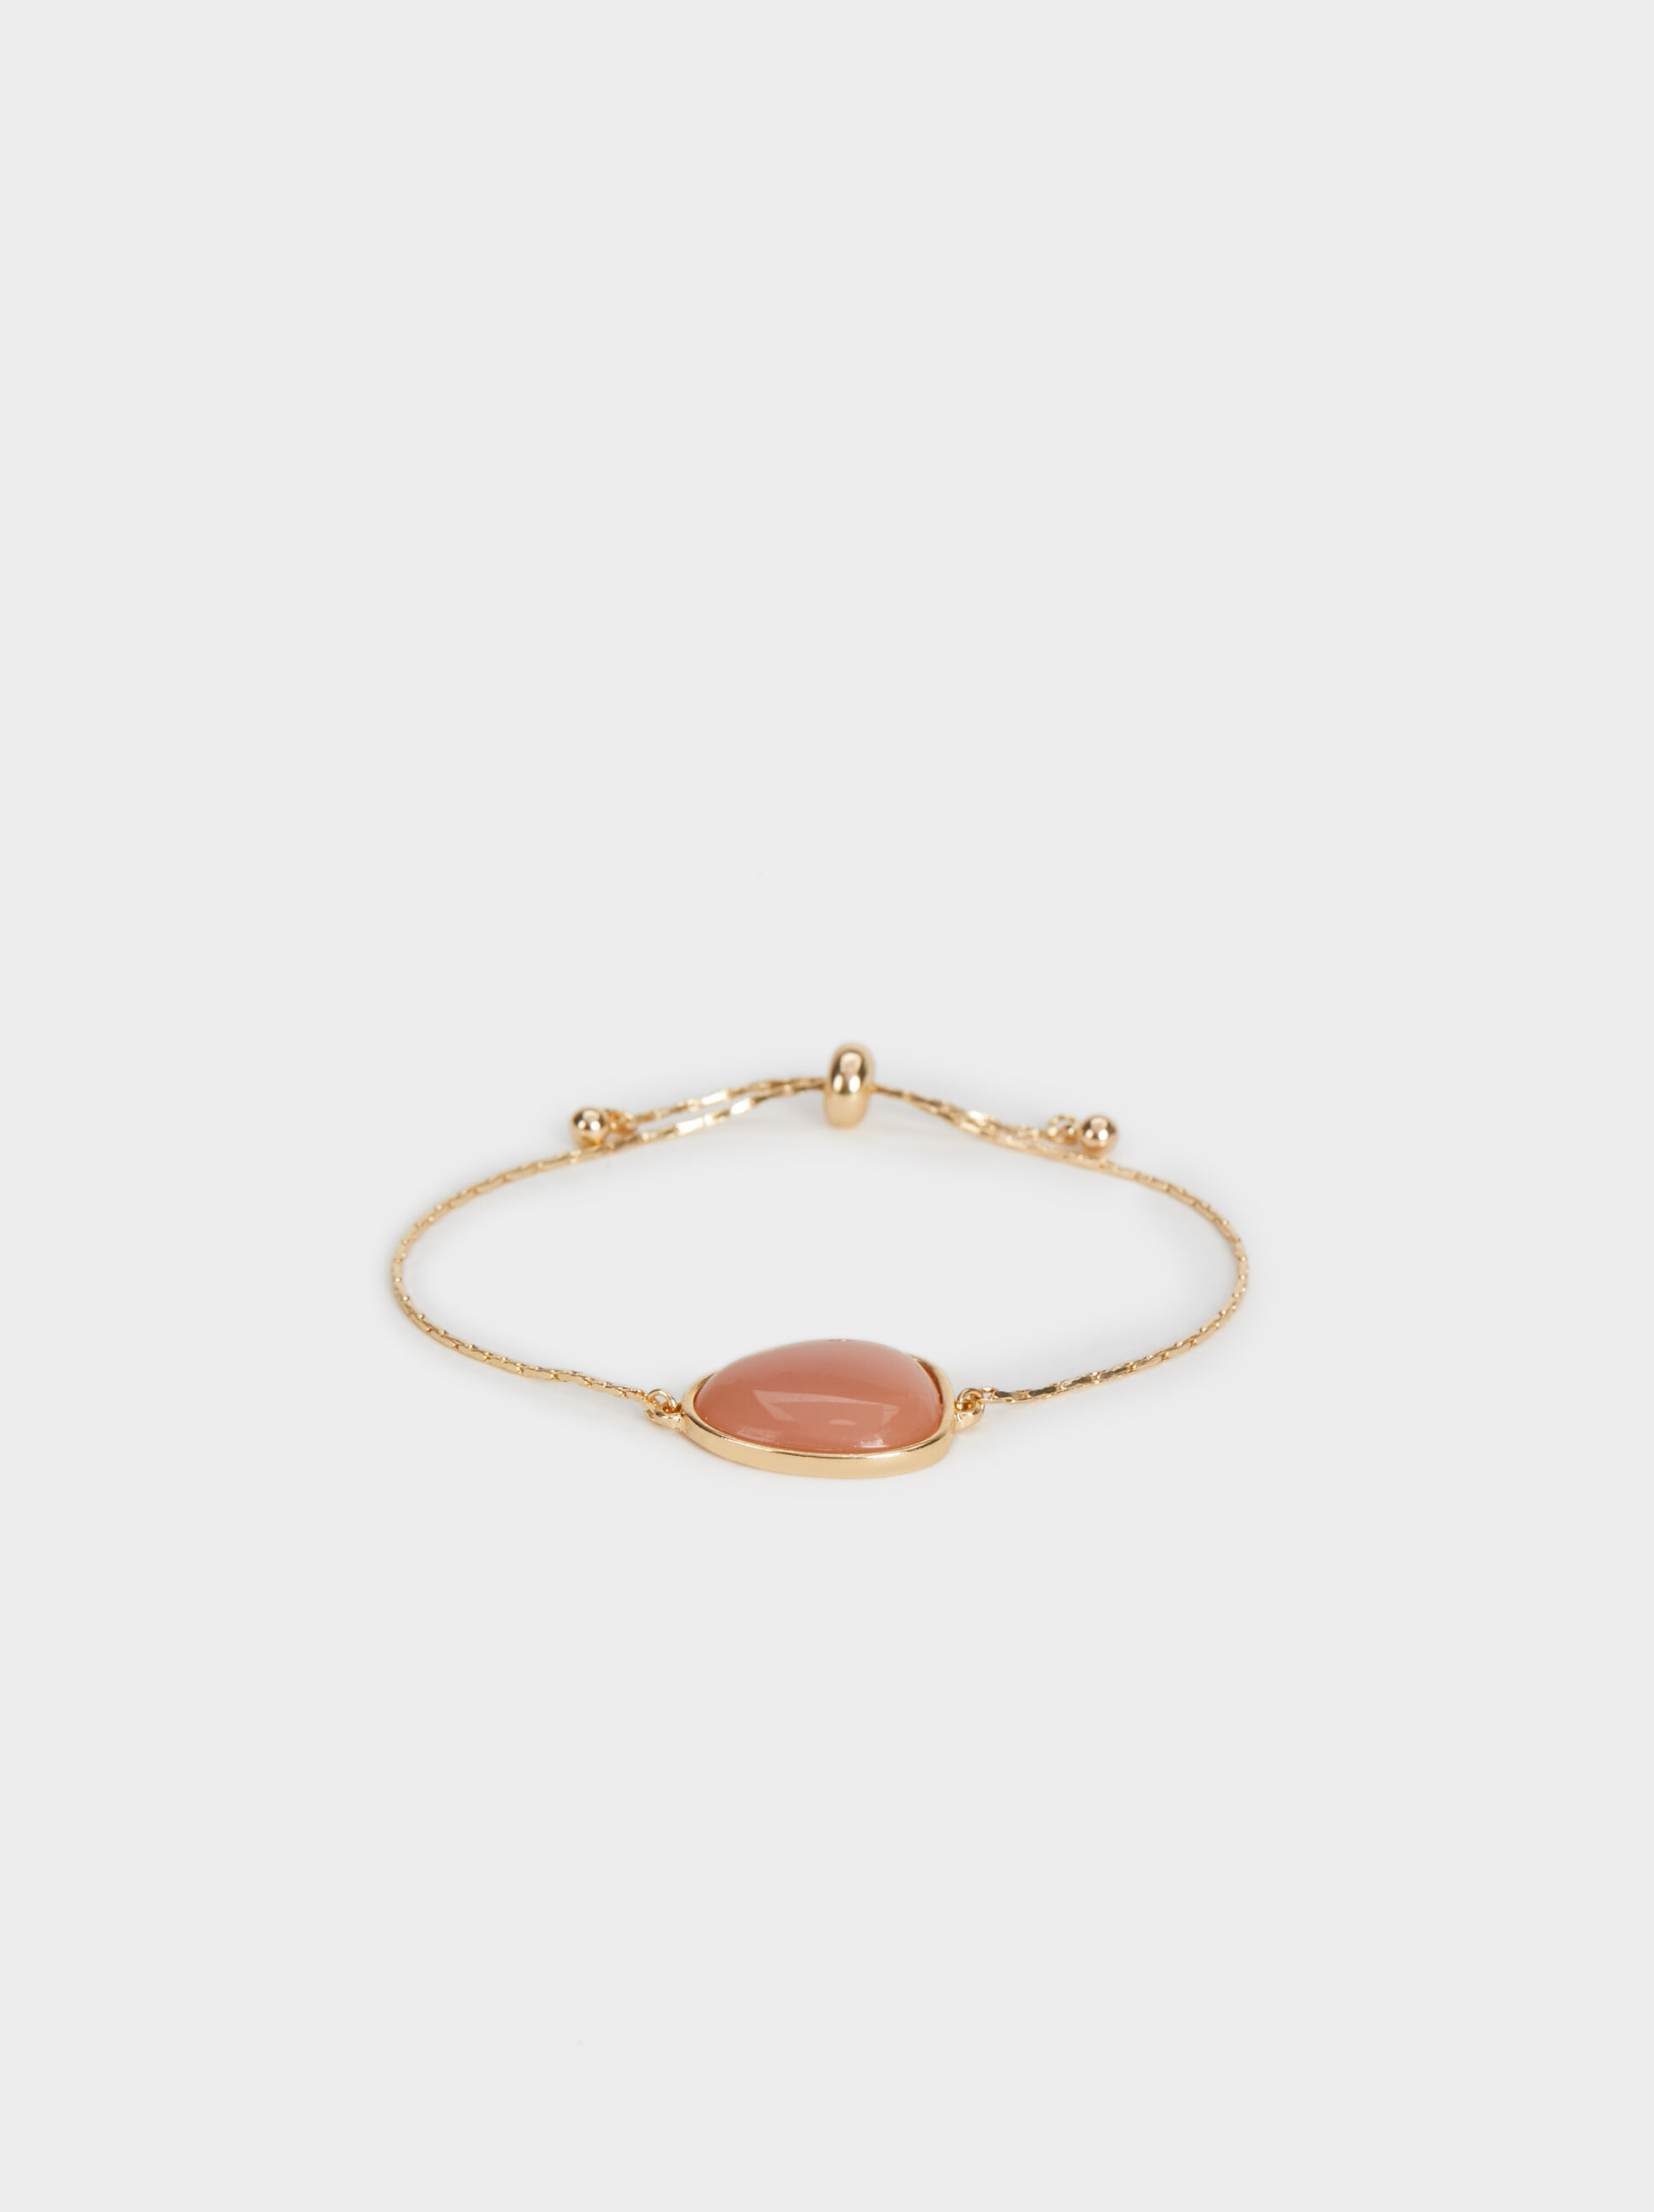 Land Adjustable Bracelet With Stone, Brick Red, hi-res